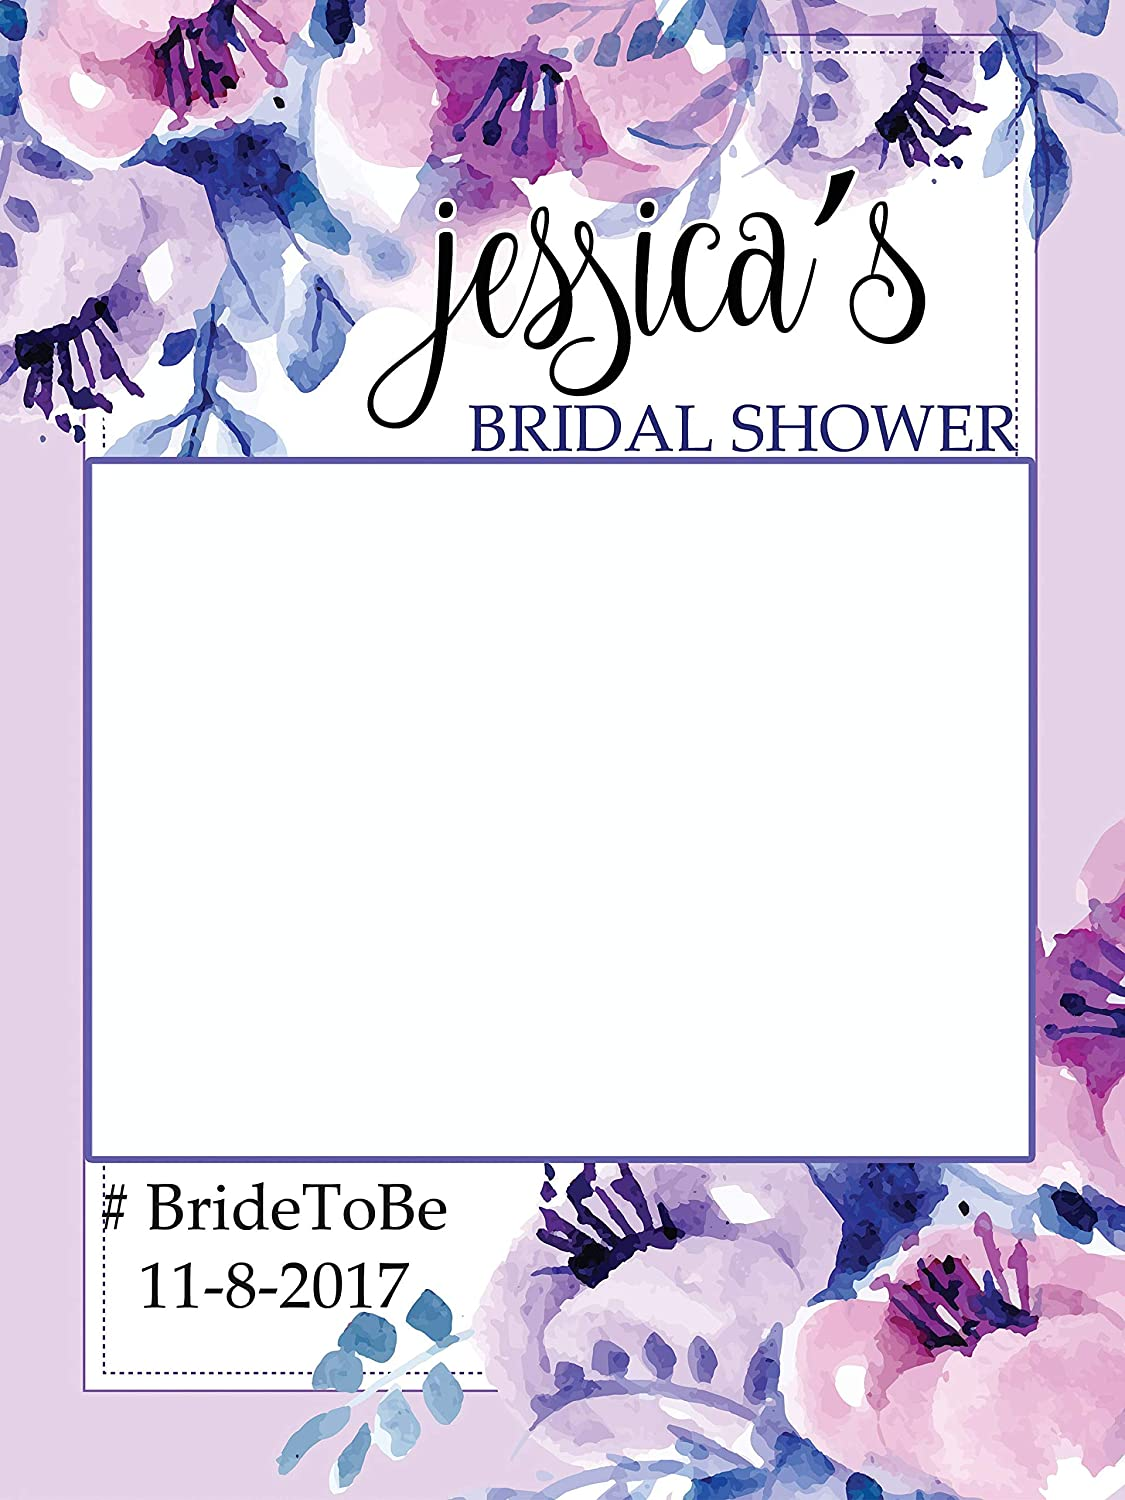 Flower Bridal Shower Photo Booth Frame, Lavender Sizes 36x24, 48x36